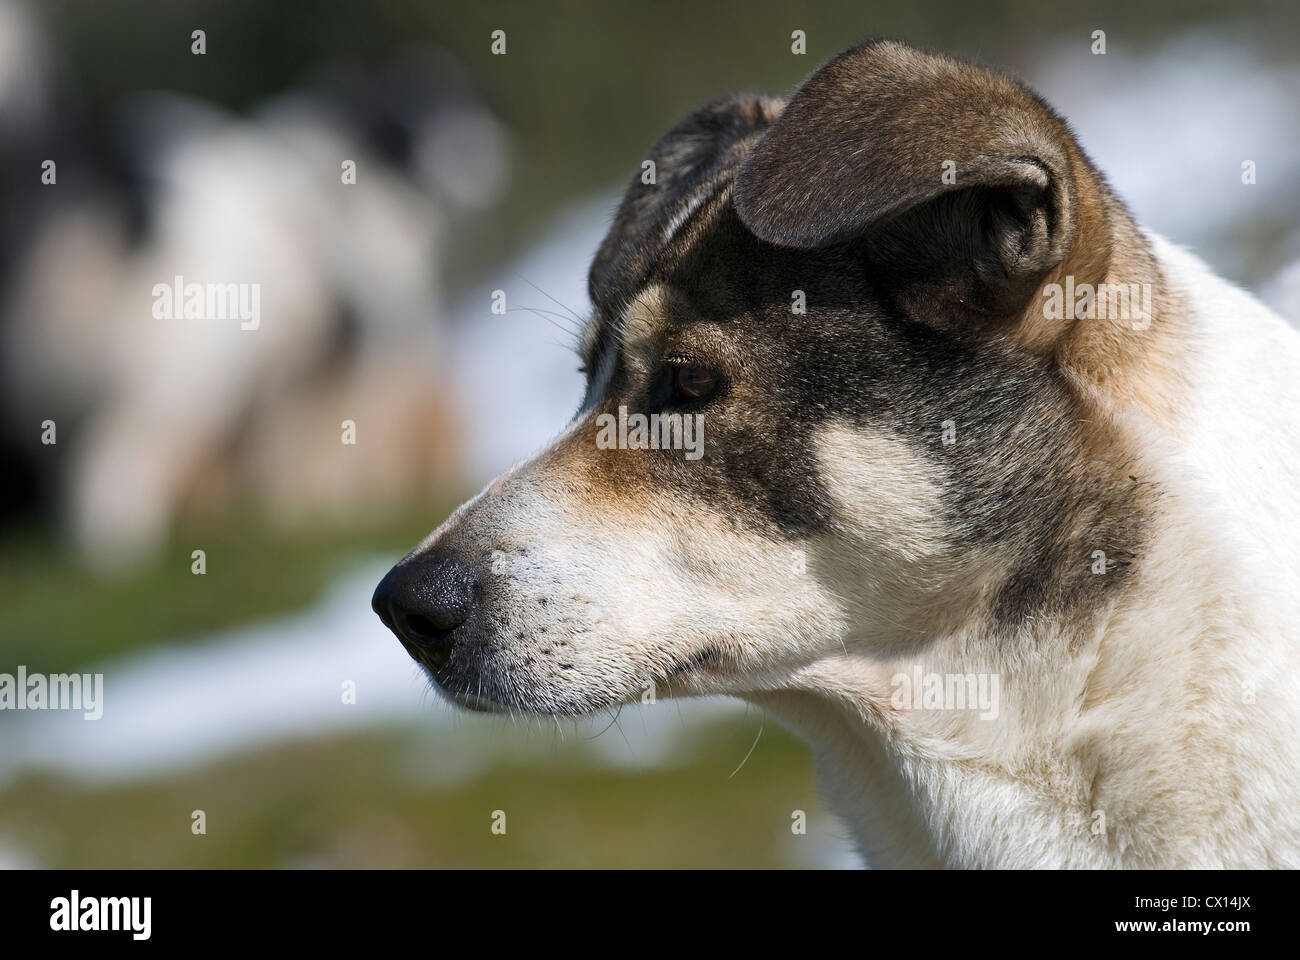 A black and white mongrel dog in profile with snow fields in the background - Stock Image